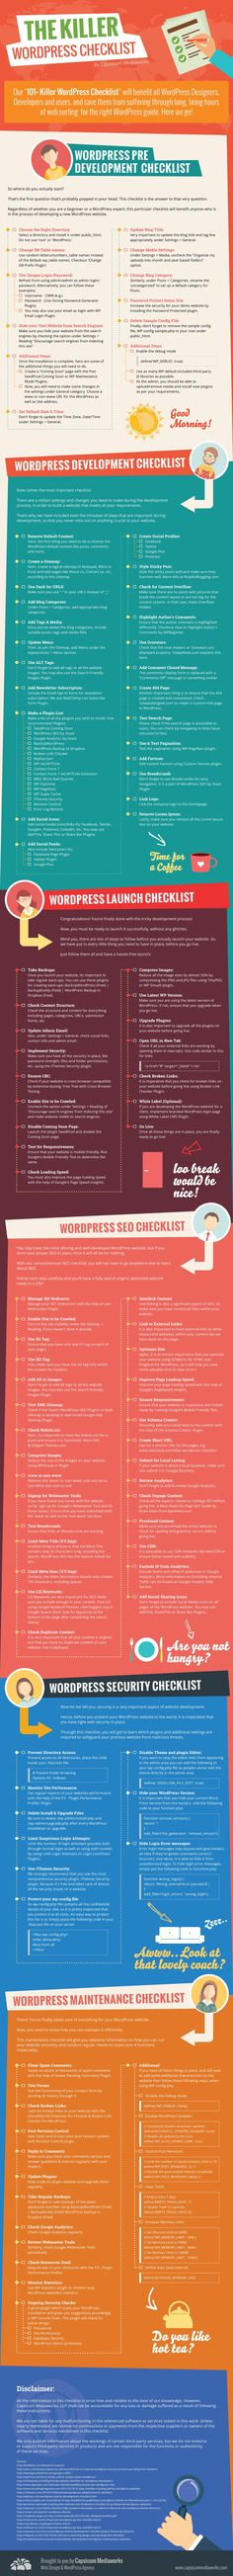 Have you ever been overwhelmed with all the bits and pieces that are part of setting up and maintaining your WordPress site as well as how to keep track of it all? This handy infographic covers all aspects of WordPress from the development process to ongoing maintenance and security. This is a super time saver… Analisamos os 150 Melhores Templates WordPress e colocamos tudo neste E-Book dividido por 15 categorias e nichos de mercado. Download GRATUITO em…